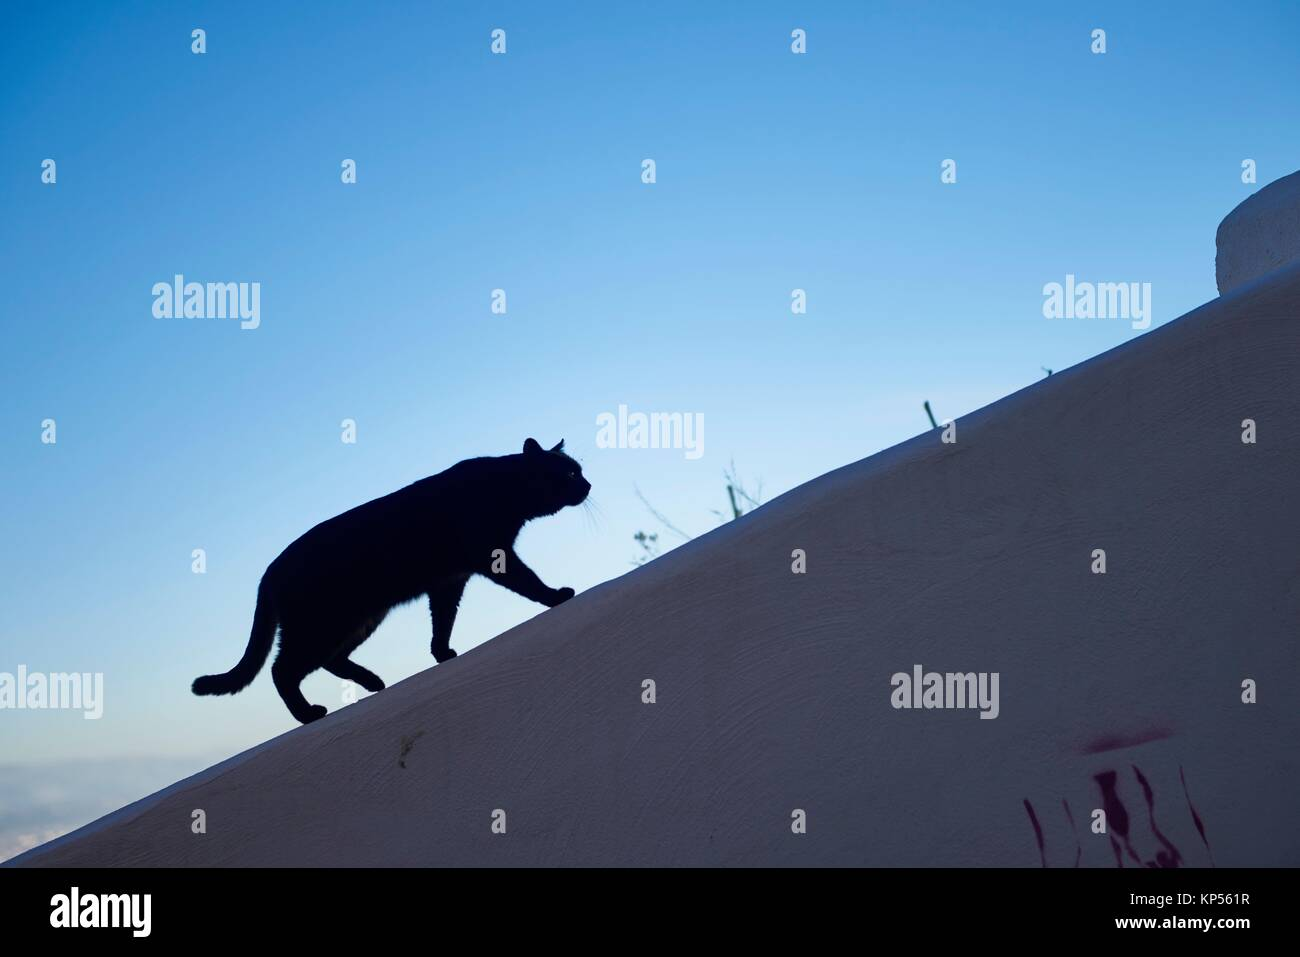 Black Cat, Granada, Andalusia, Spain, Europe. - Stock Image